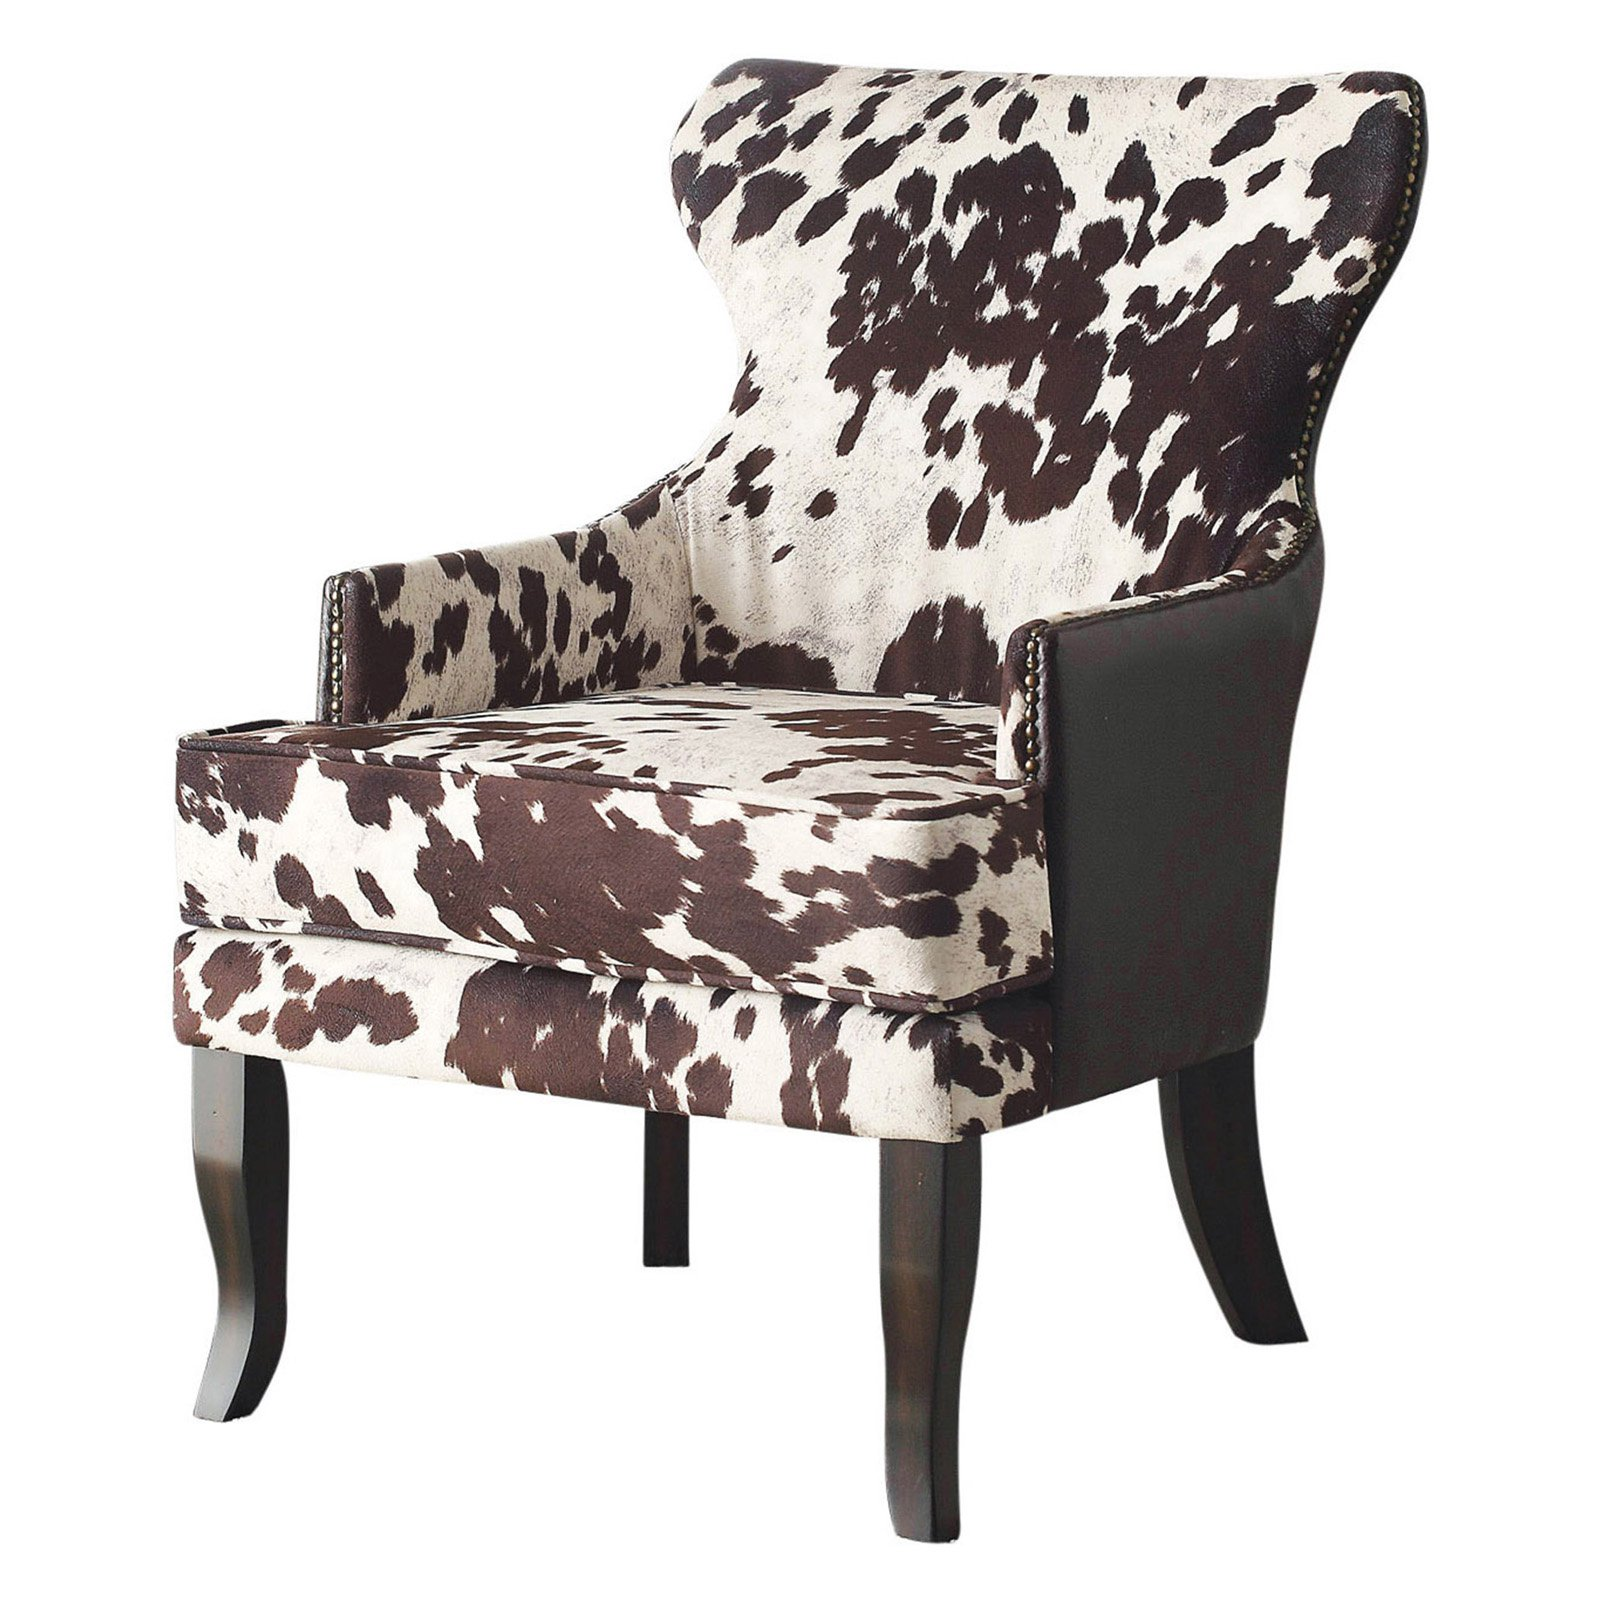 Cow Hide Chair Nspire Faux Cow Hide Accent Chair With Stud Detail